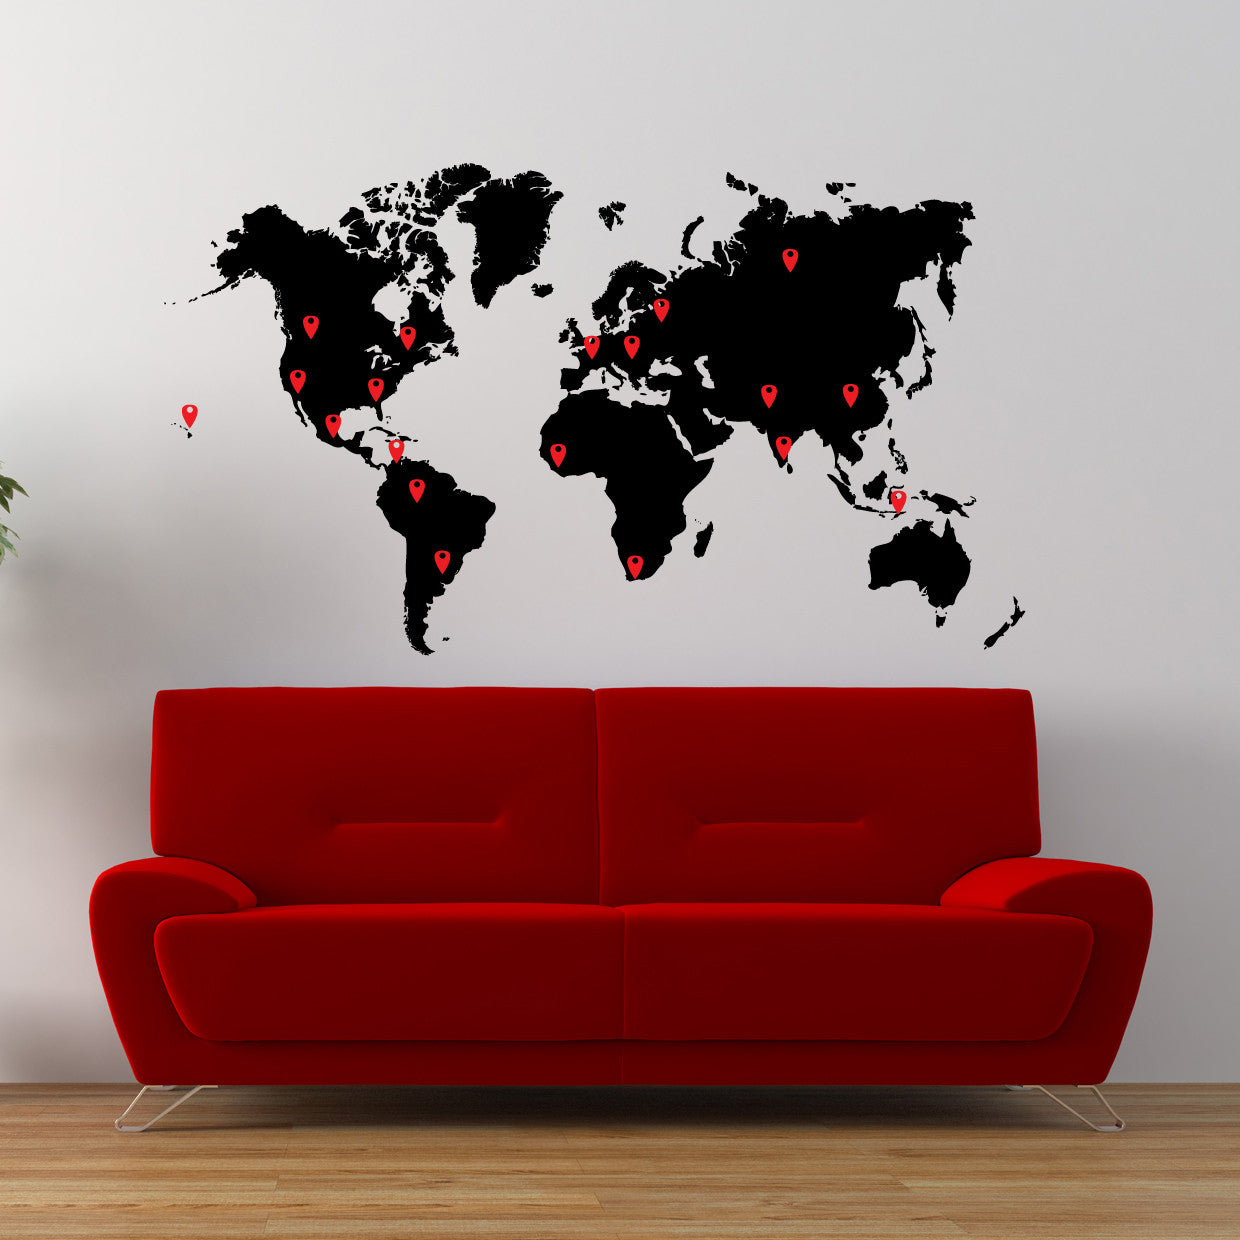 World map vinyl wall decal world map with pins world map pin drops decal 873 gumiabroncs